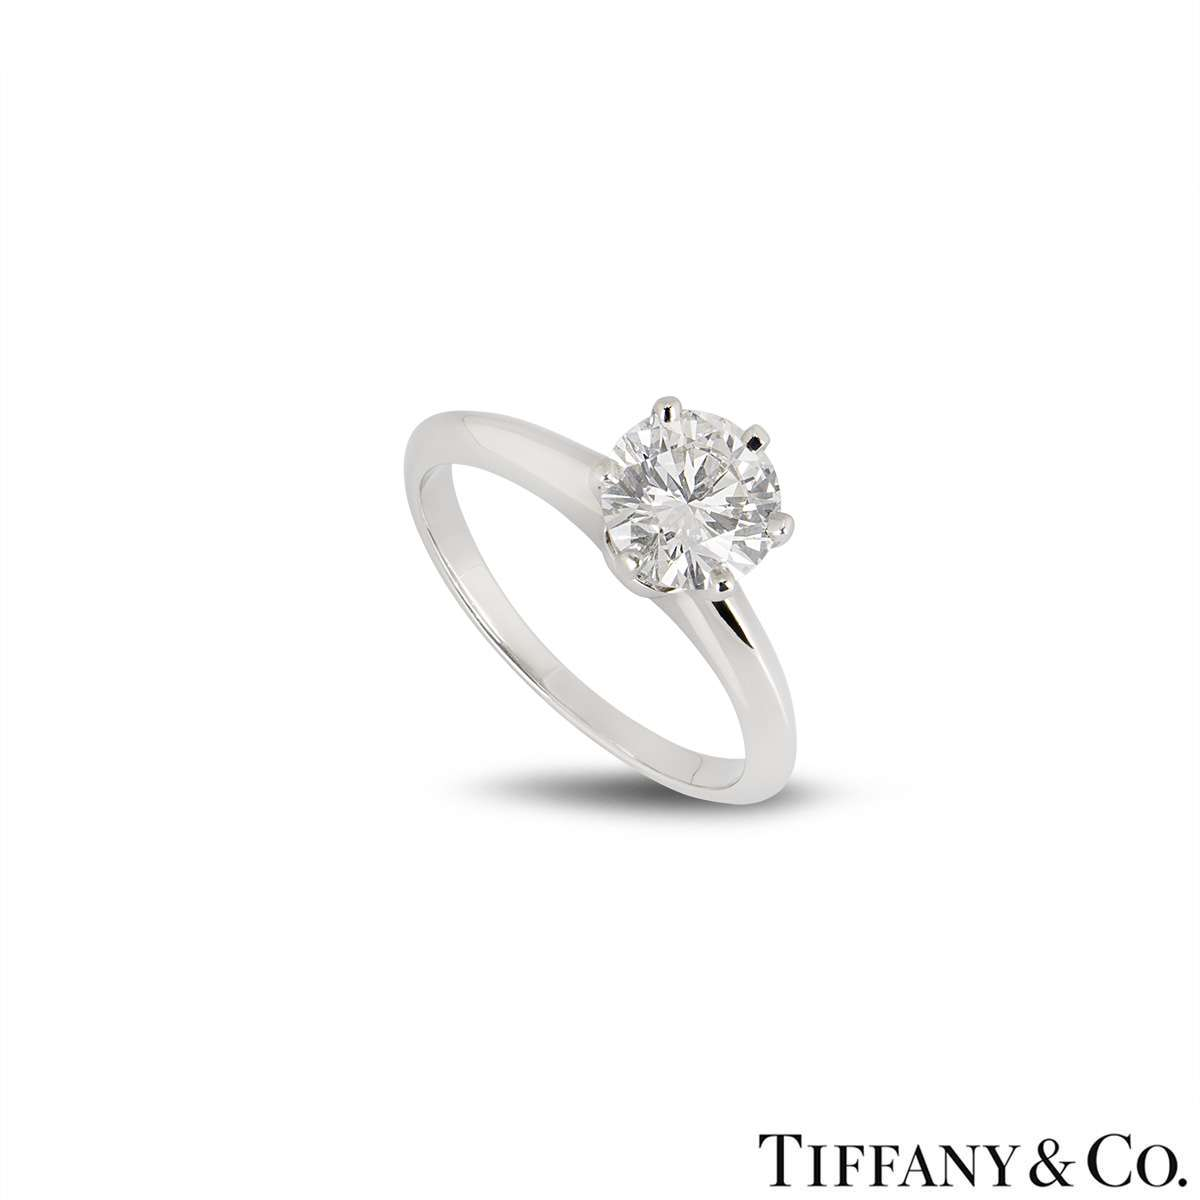 Tiffany & Co. Platinum Diamond Setting Ring 1.01ct D/VS1